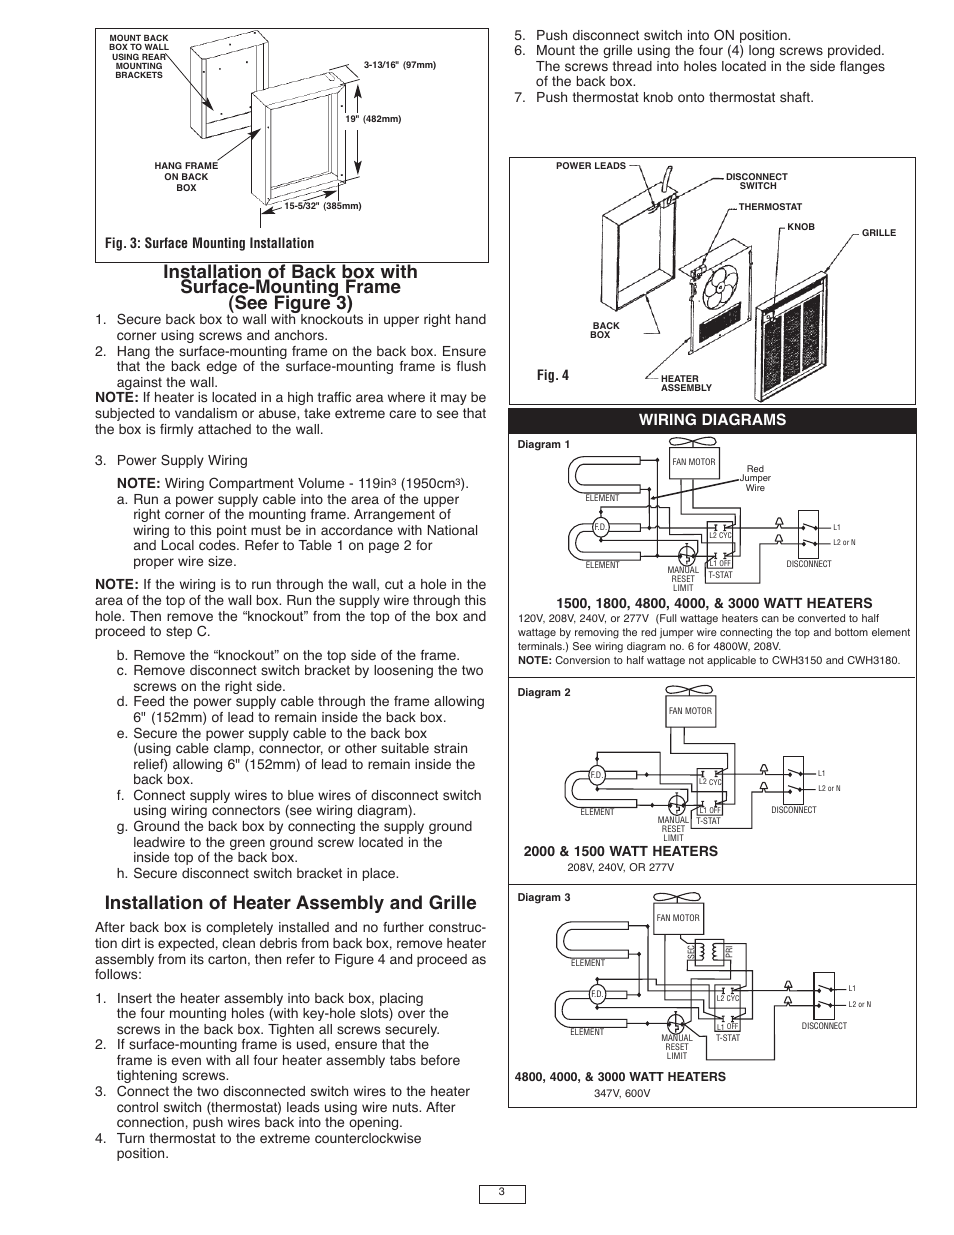 Installation Of Heater Assembly And Grille Wiring Diagrams 1950cm 277v Diagram Qmark Cwh3000 Series Commercial Fan Forced Wall Heaters User Manual Page 3 16